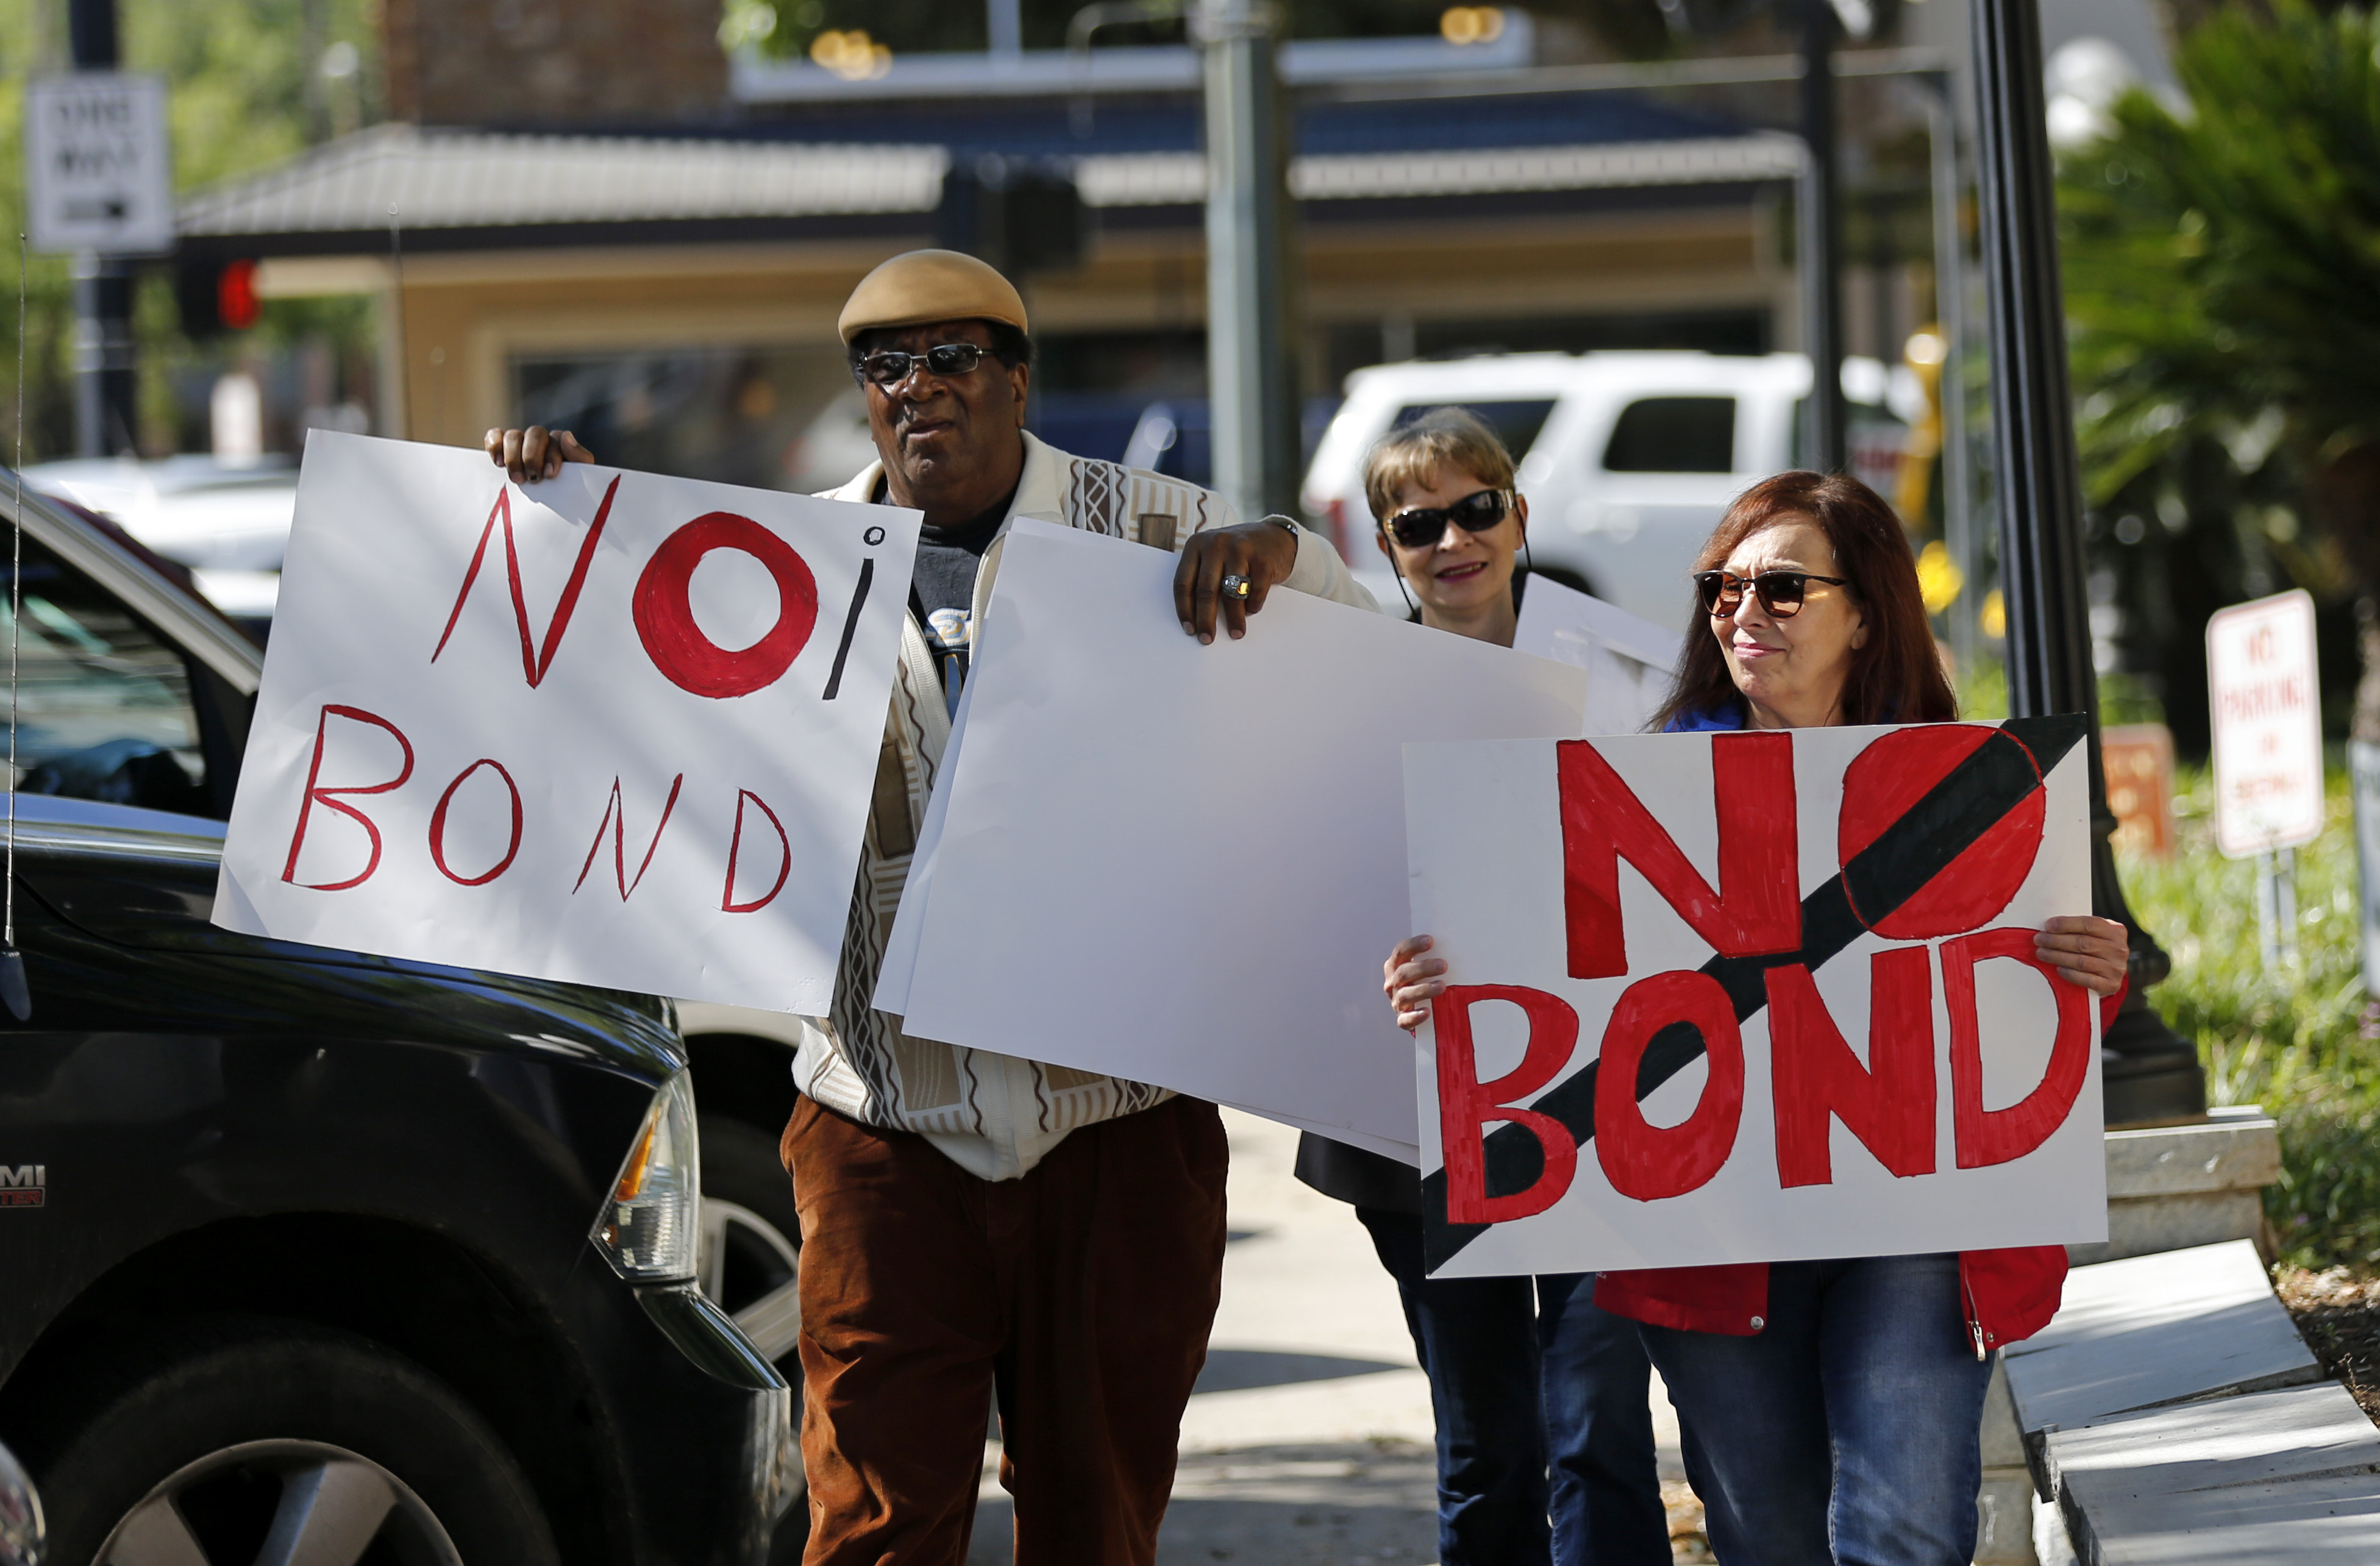 Wilfred Young, Agnes Courbille, center, and Karel Anne Zibe, right, of the St. Landry Parish branch of the NAACP, carry signs outside the St. Landry Parish courthouse after a bond hearing for Holden Matthews in Opelousas, La., Monday, April 15, 2019. Matthews, who is white, and is the son of a St. Landry Parish sheriff's deputy, was arrested Wednesday on three charges of arson of a religious building, and is the suspect in three recent arson fires that destroyed African American churches in Louisiana. (AP Photo/Gerald Herbert)